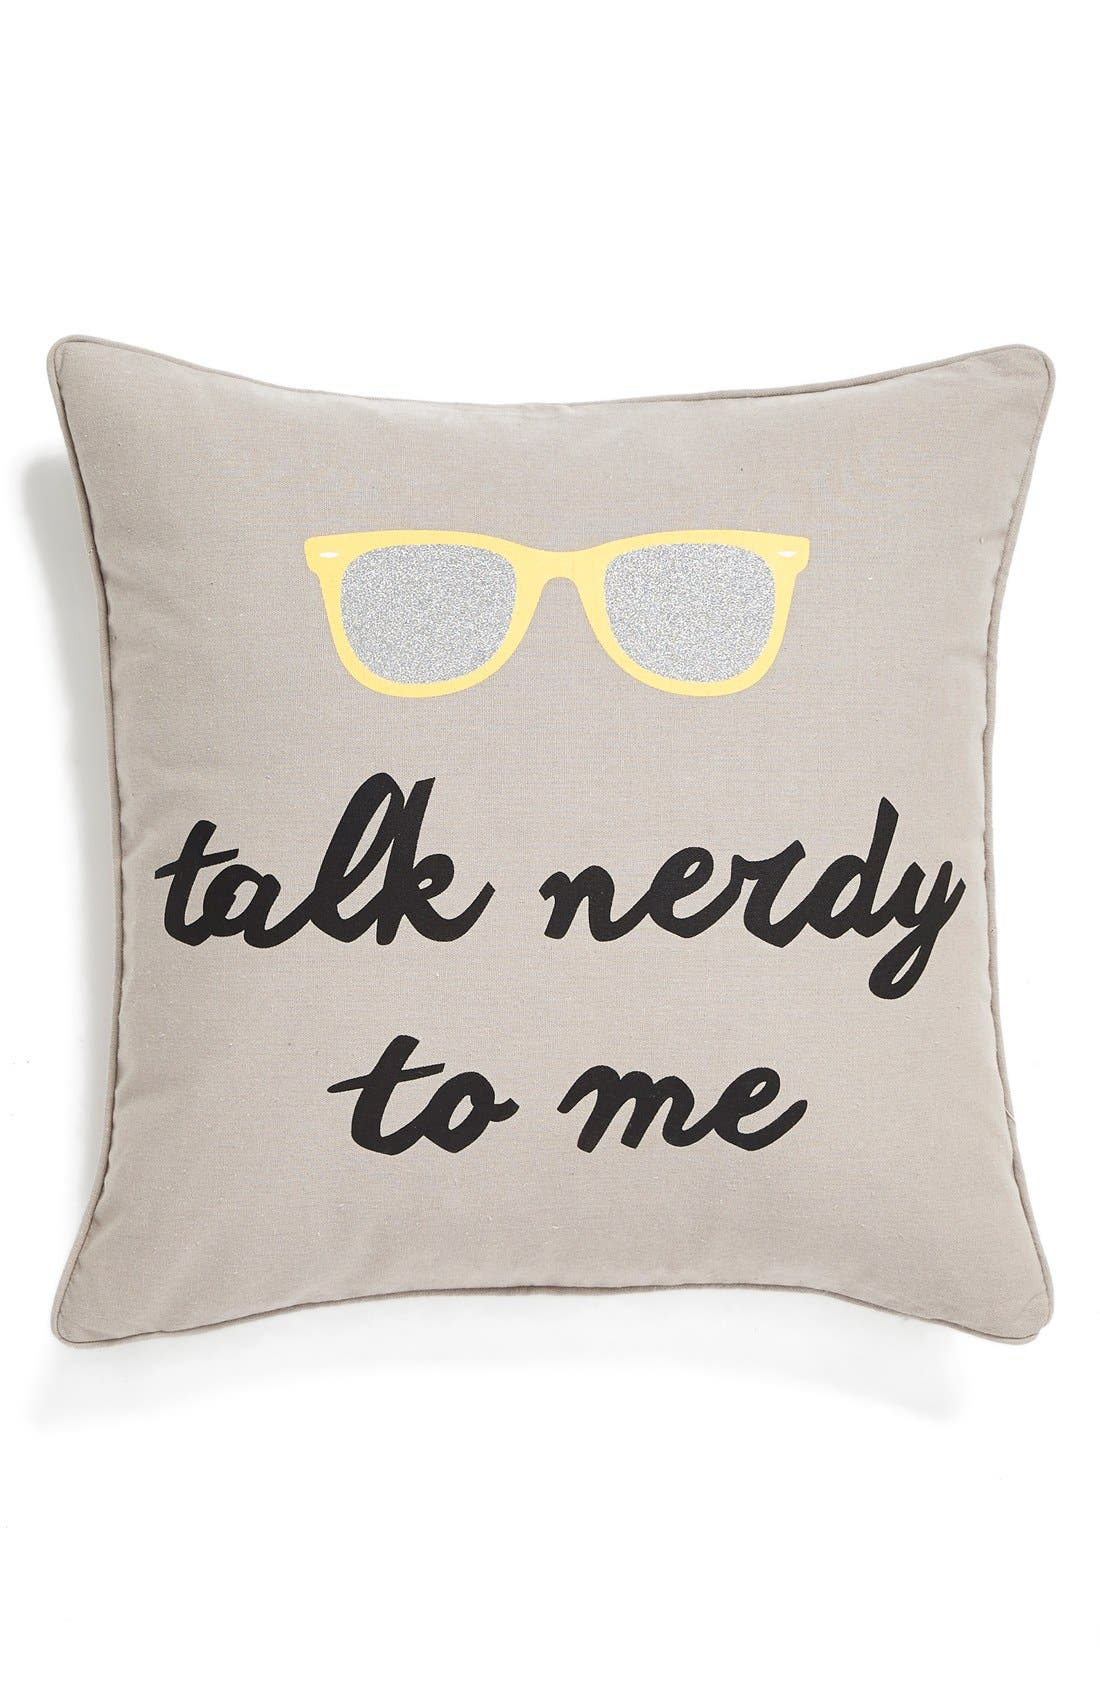 Alternate Image 1 Selected - Levtex 'Talk Nerdy to Me' Pillow